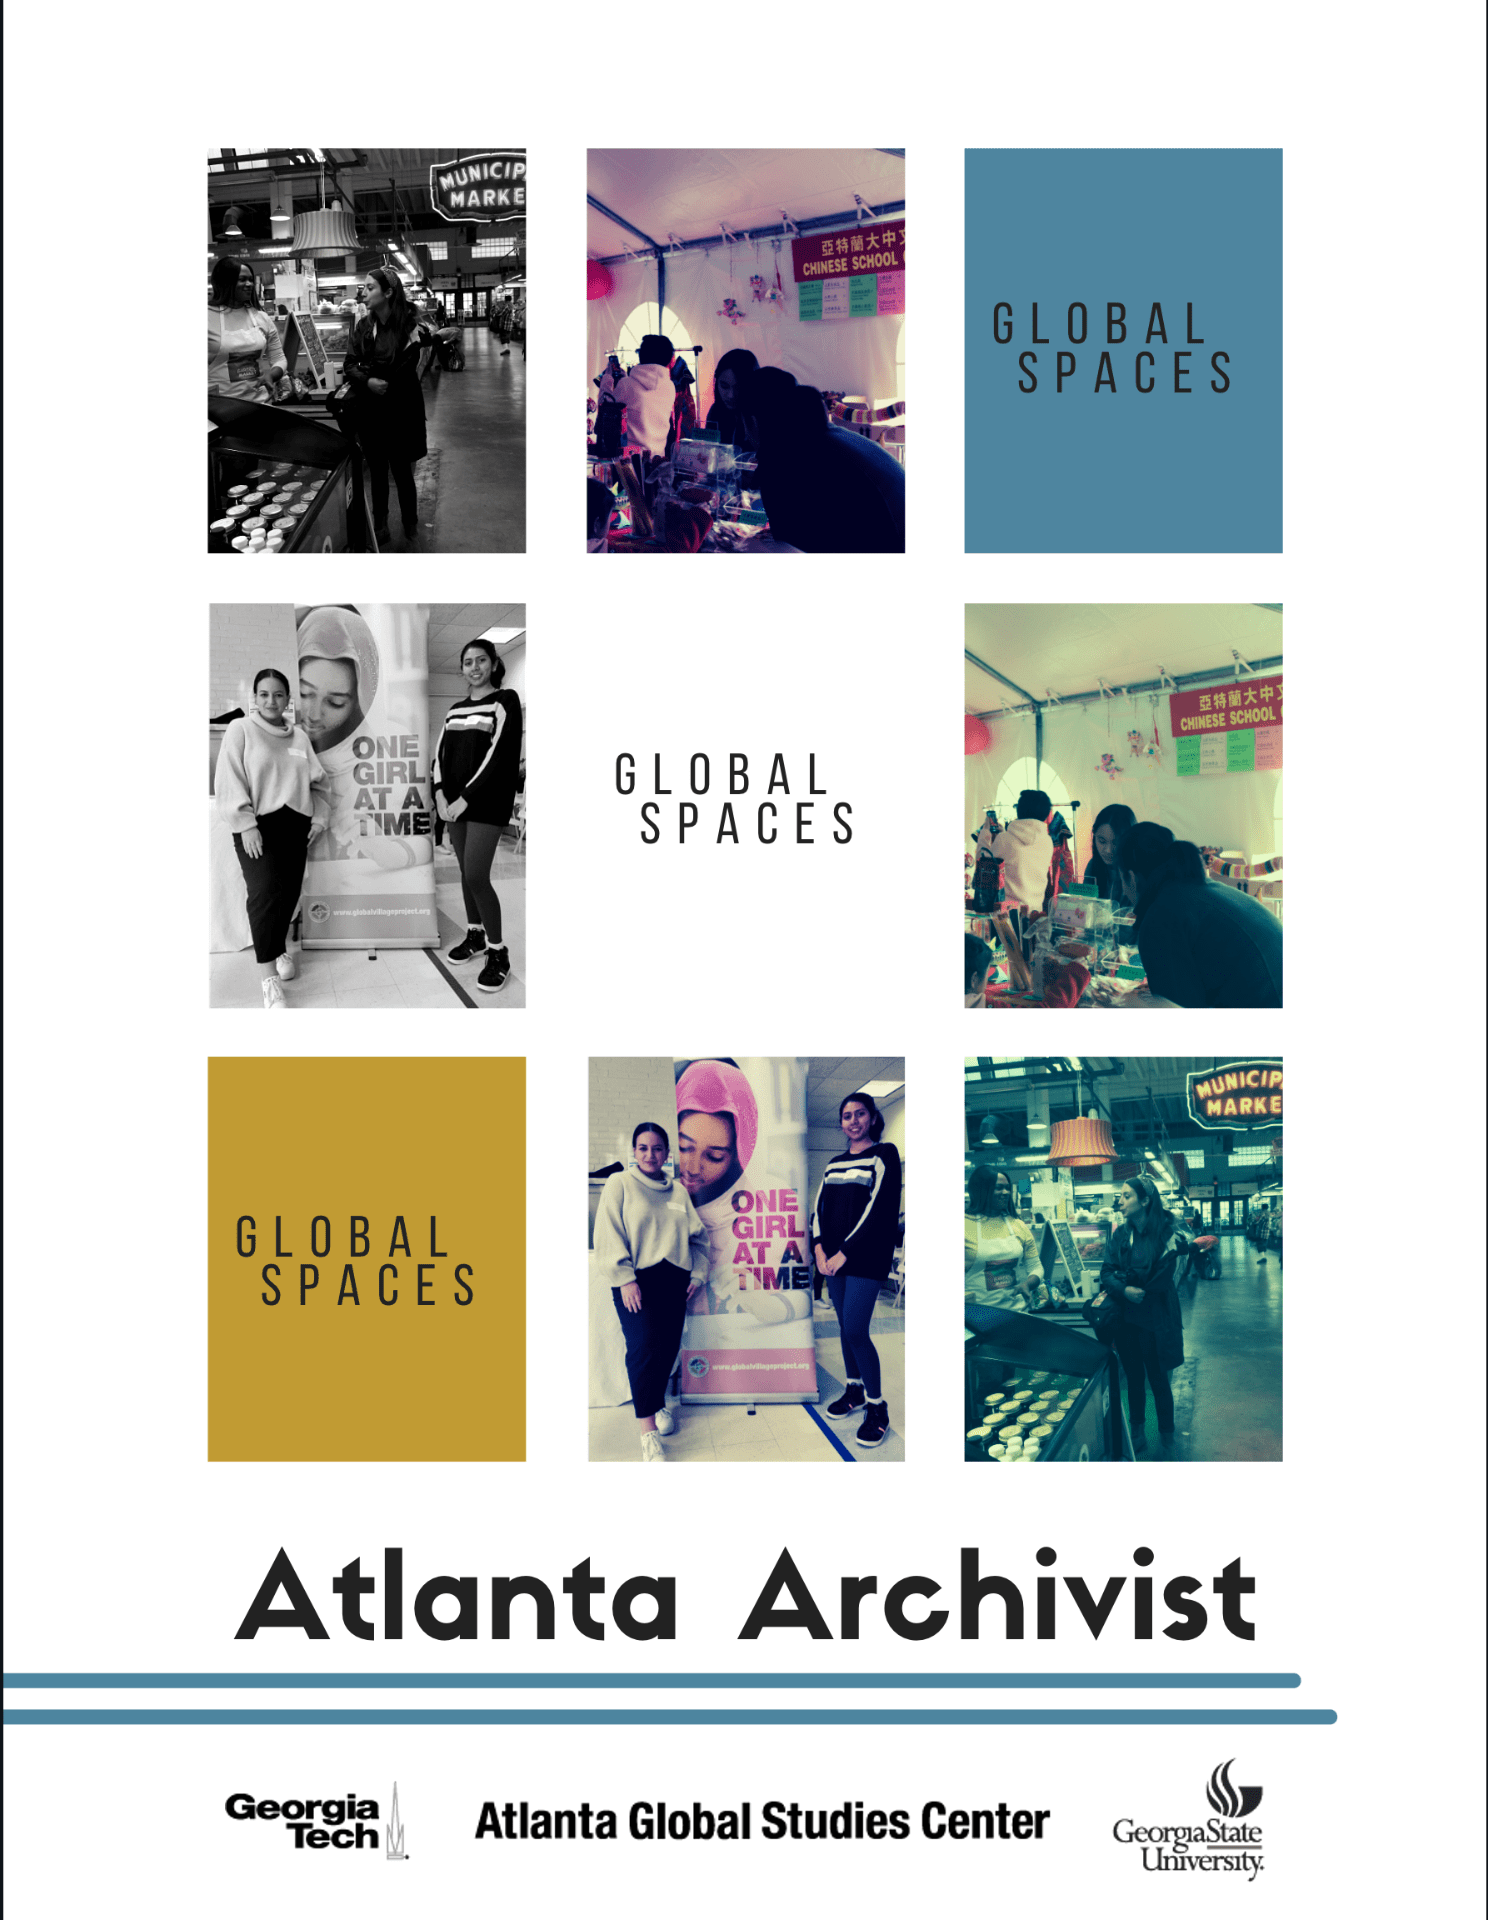 Global Spaces - Atlanta Archivist